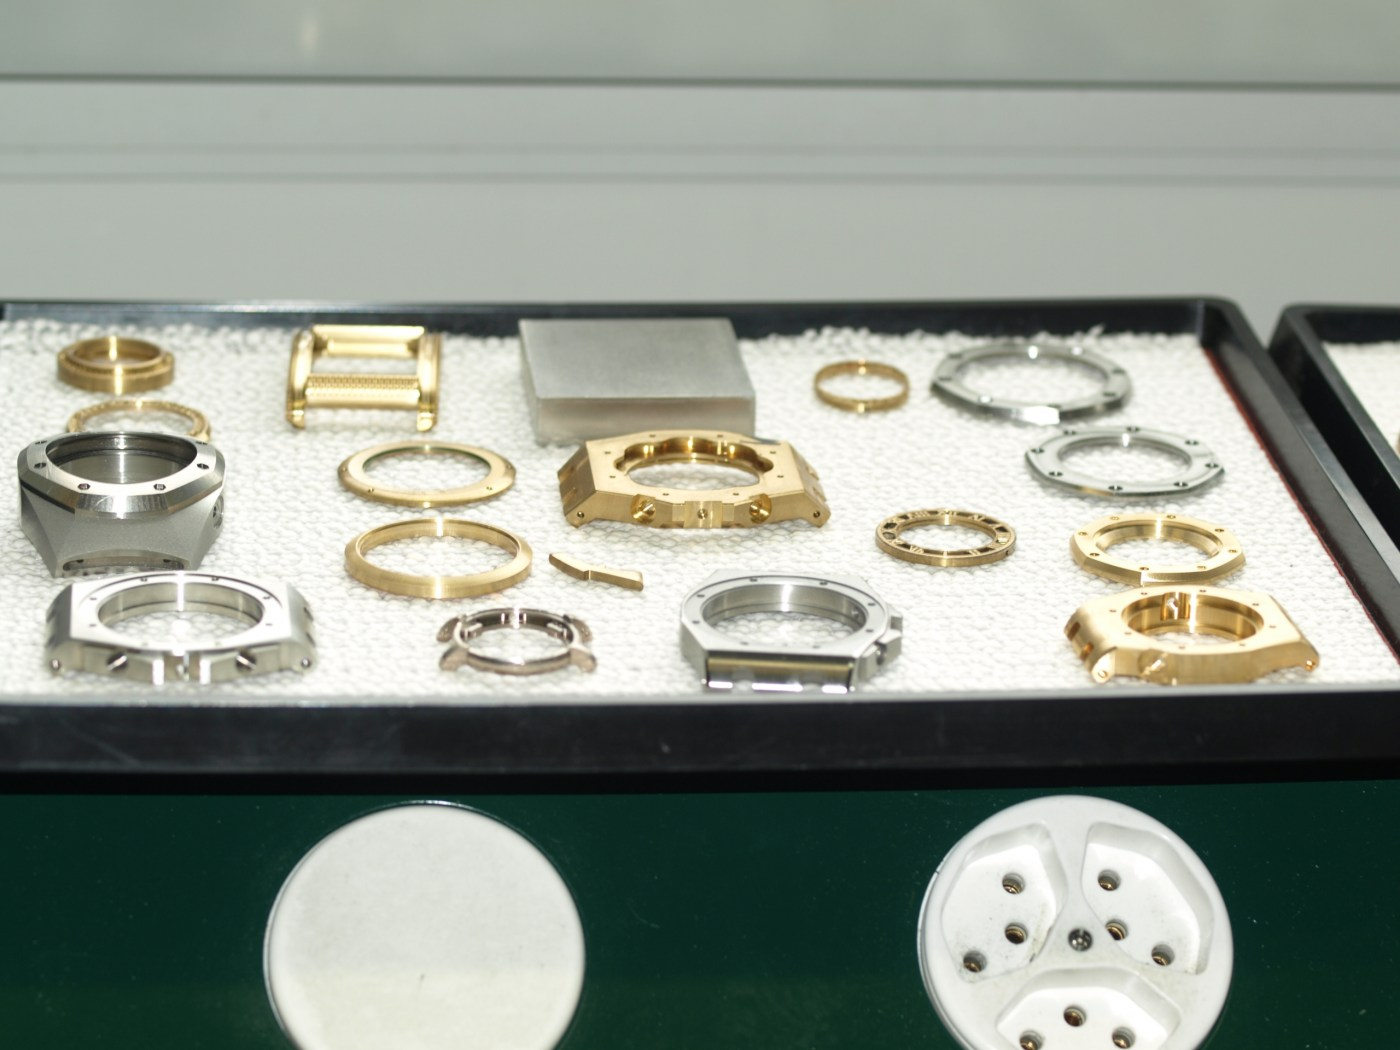 Royal Oak cases and bezels ready to go to quality control and finishing departments 2009